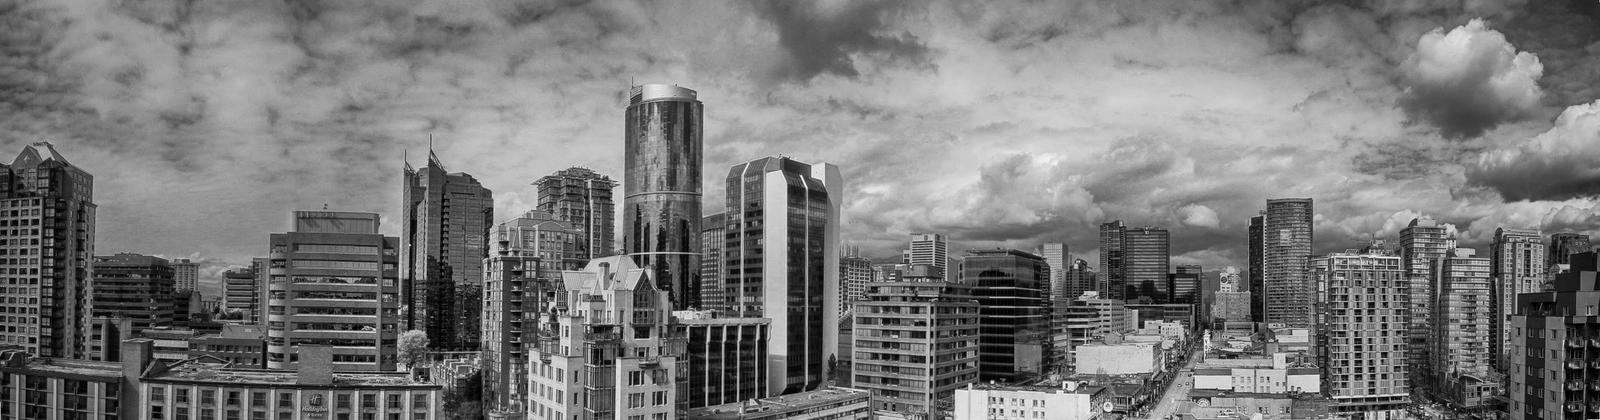 Vancouver Cityscape by DavHed